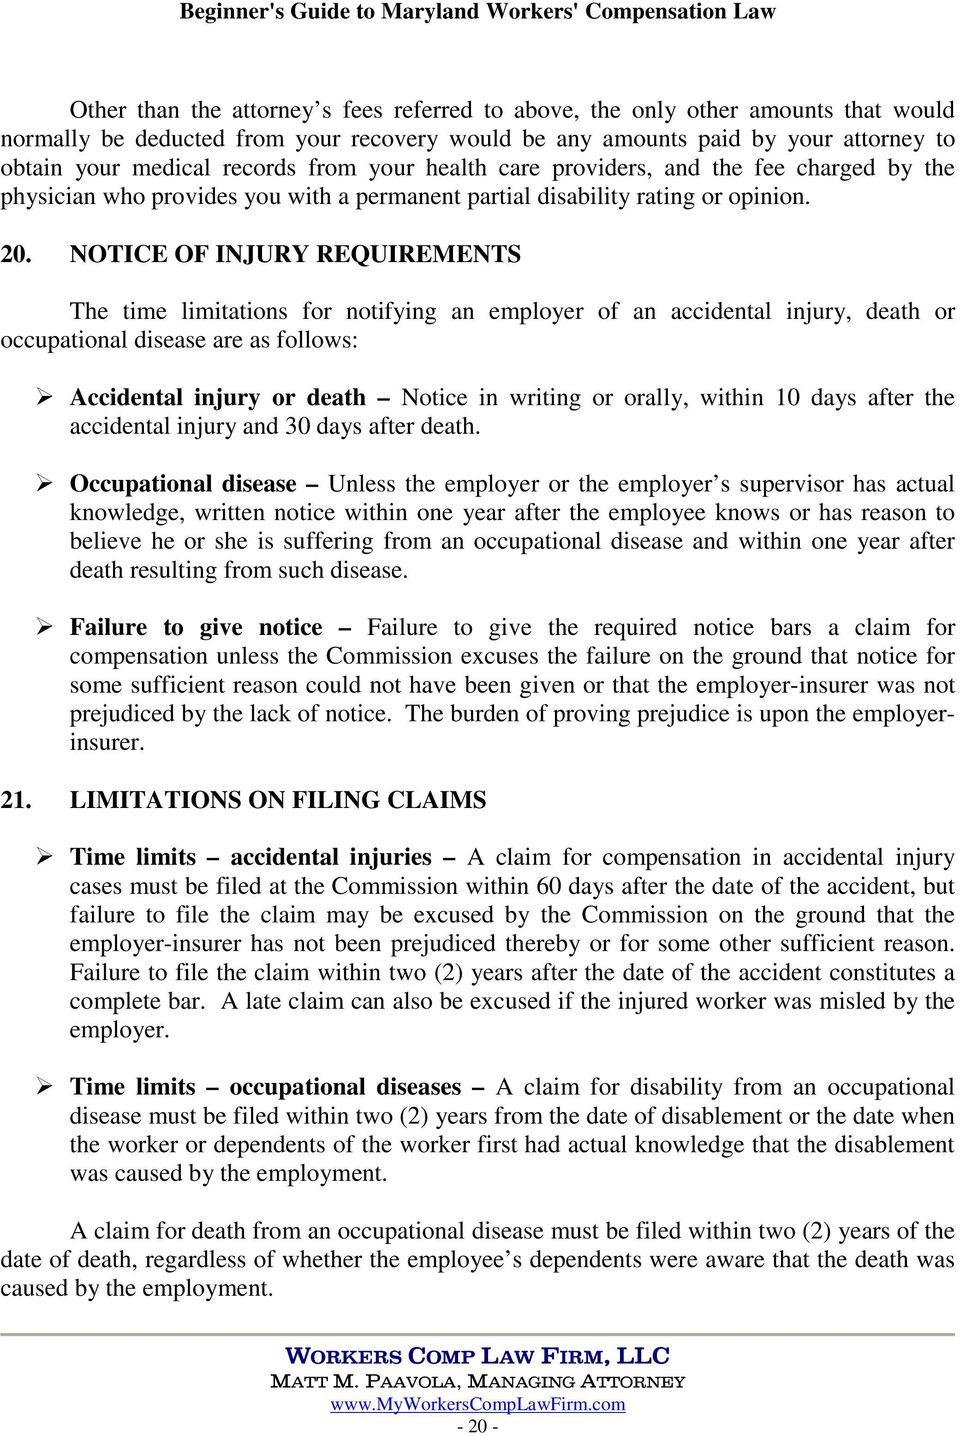 NOTICE OF INJURY REQUIREMENTS The time limitations for notifying an employer of an accidental injury, death or occupational disease are as follows: Accidental injury or death Notice in writing or